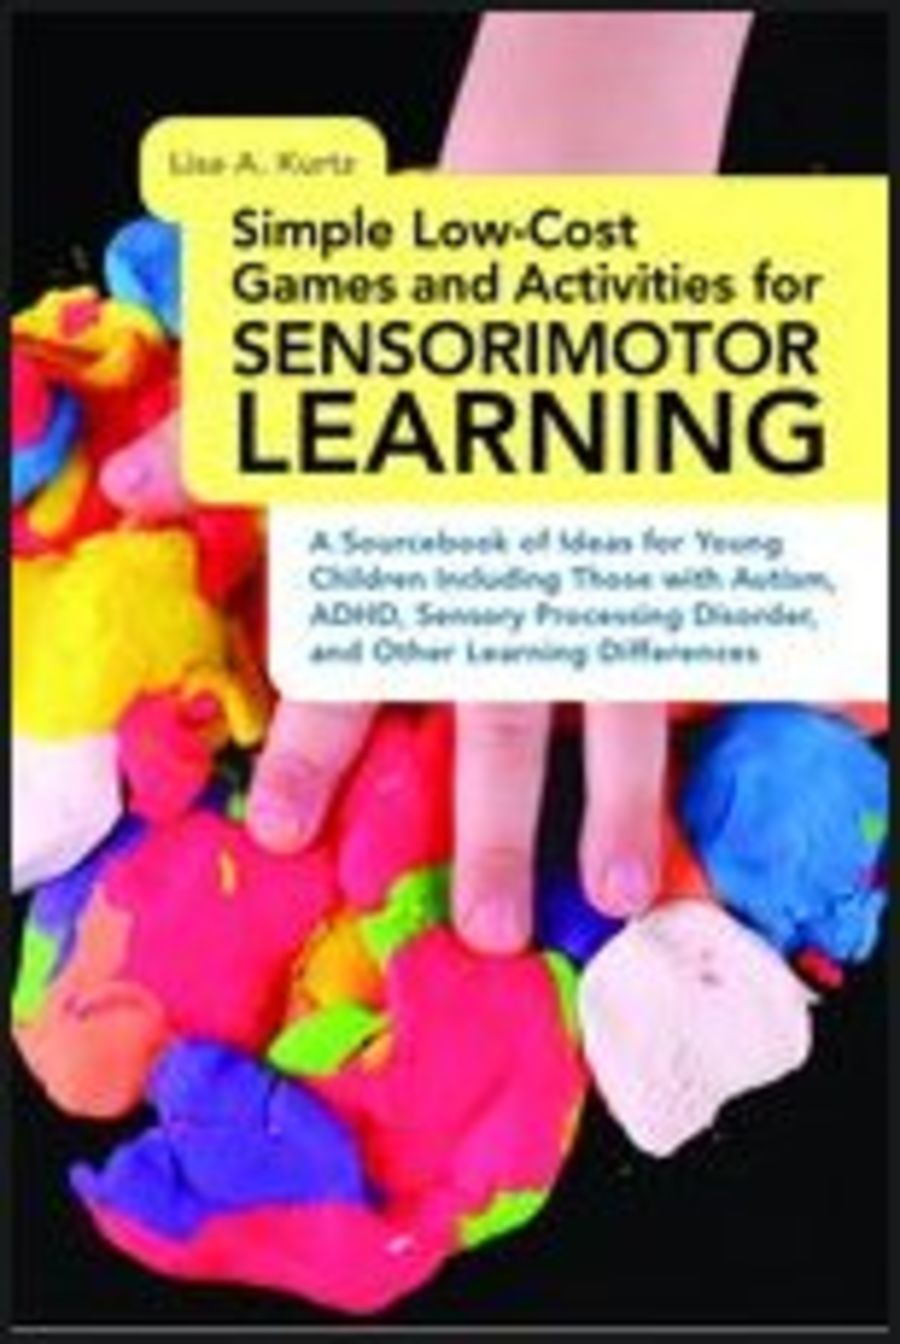 Sensori-motor Learning: simple low cost games and activities